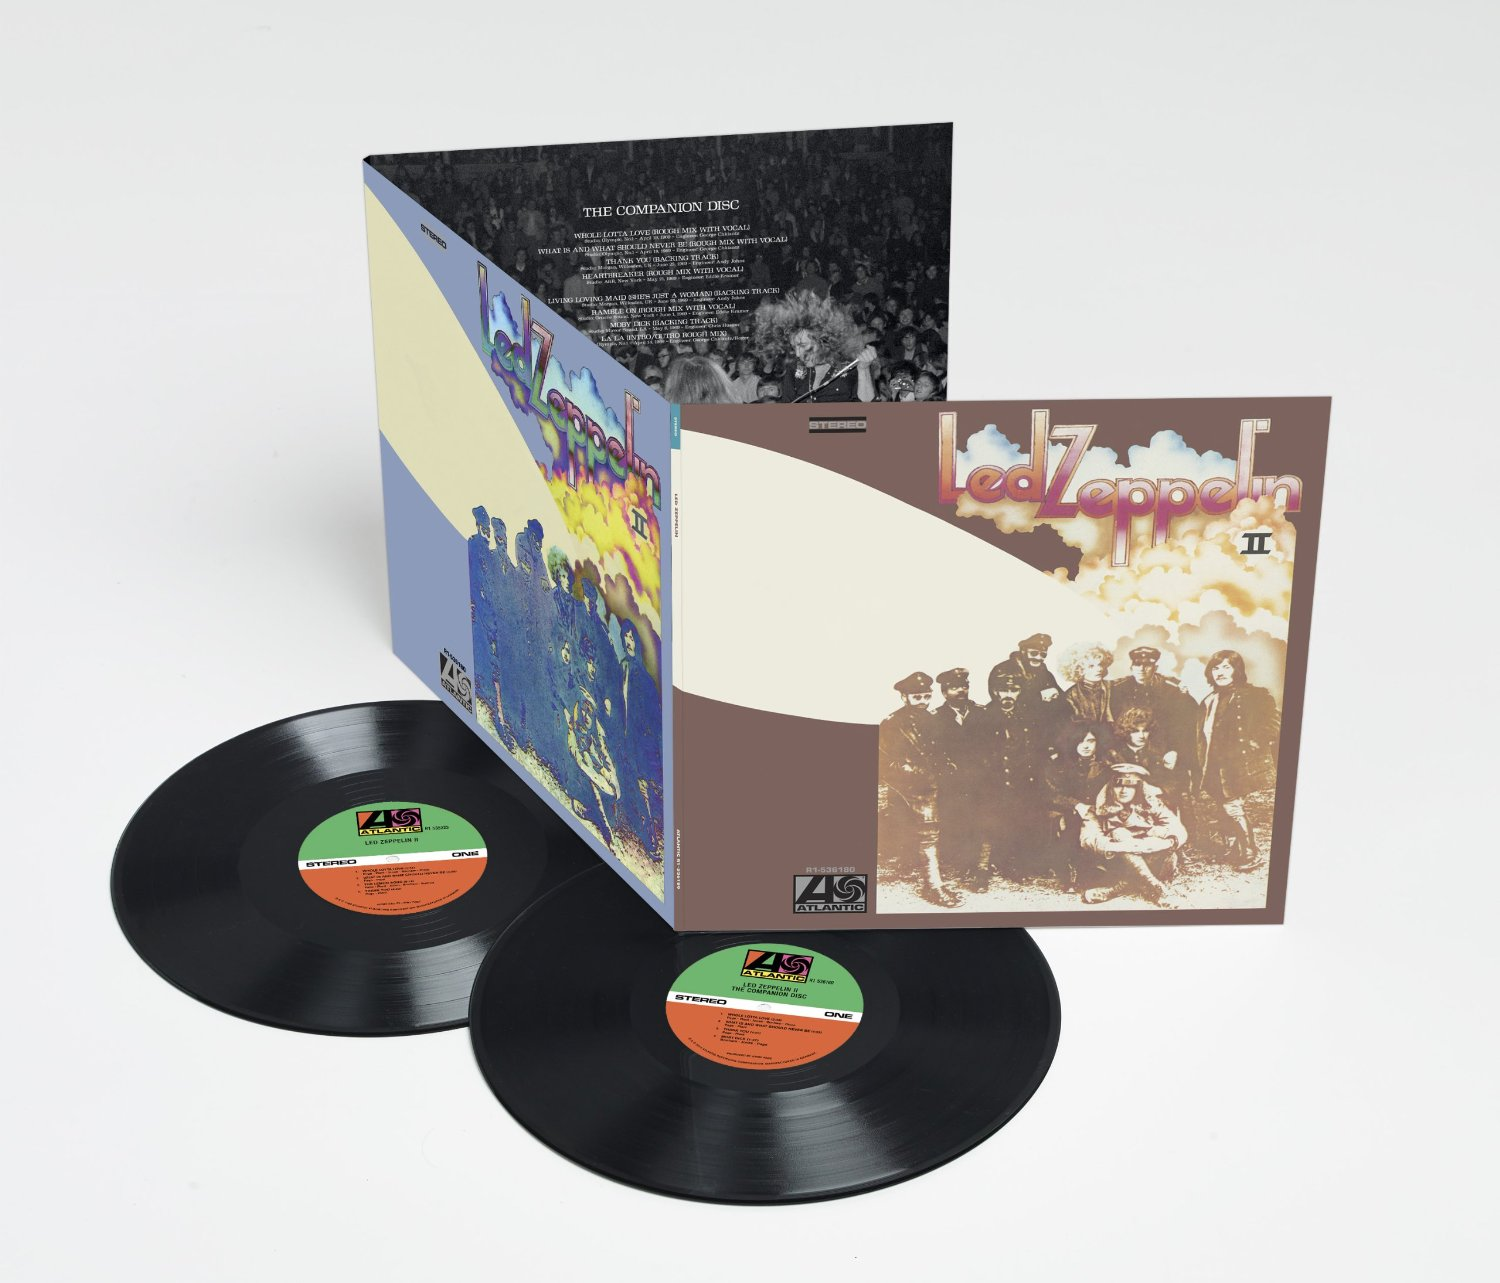 Led Zeppelin 2014 reissues / Led Zeppelin II 2LP deluxe vinyl